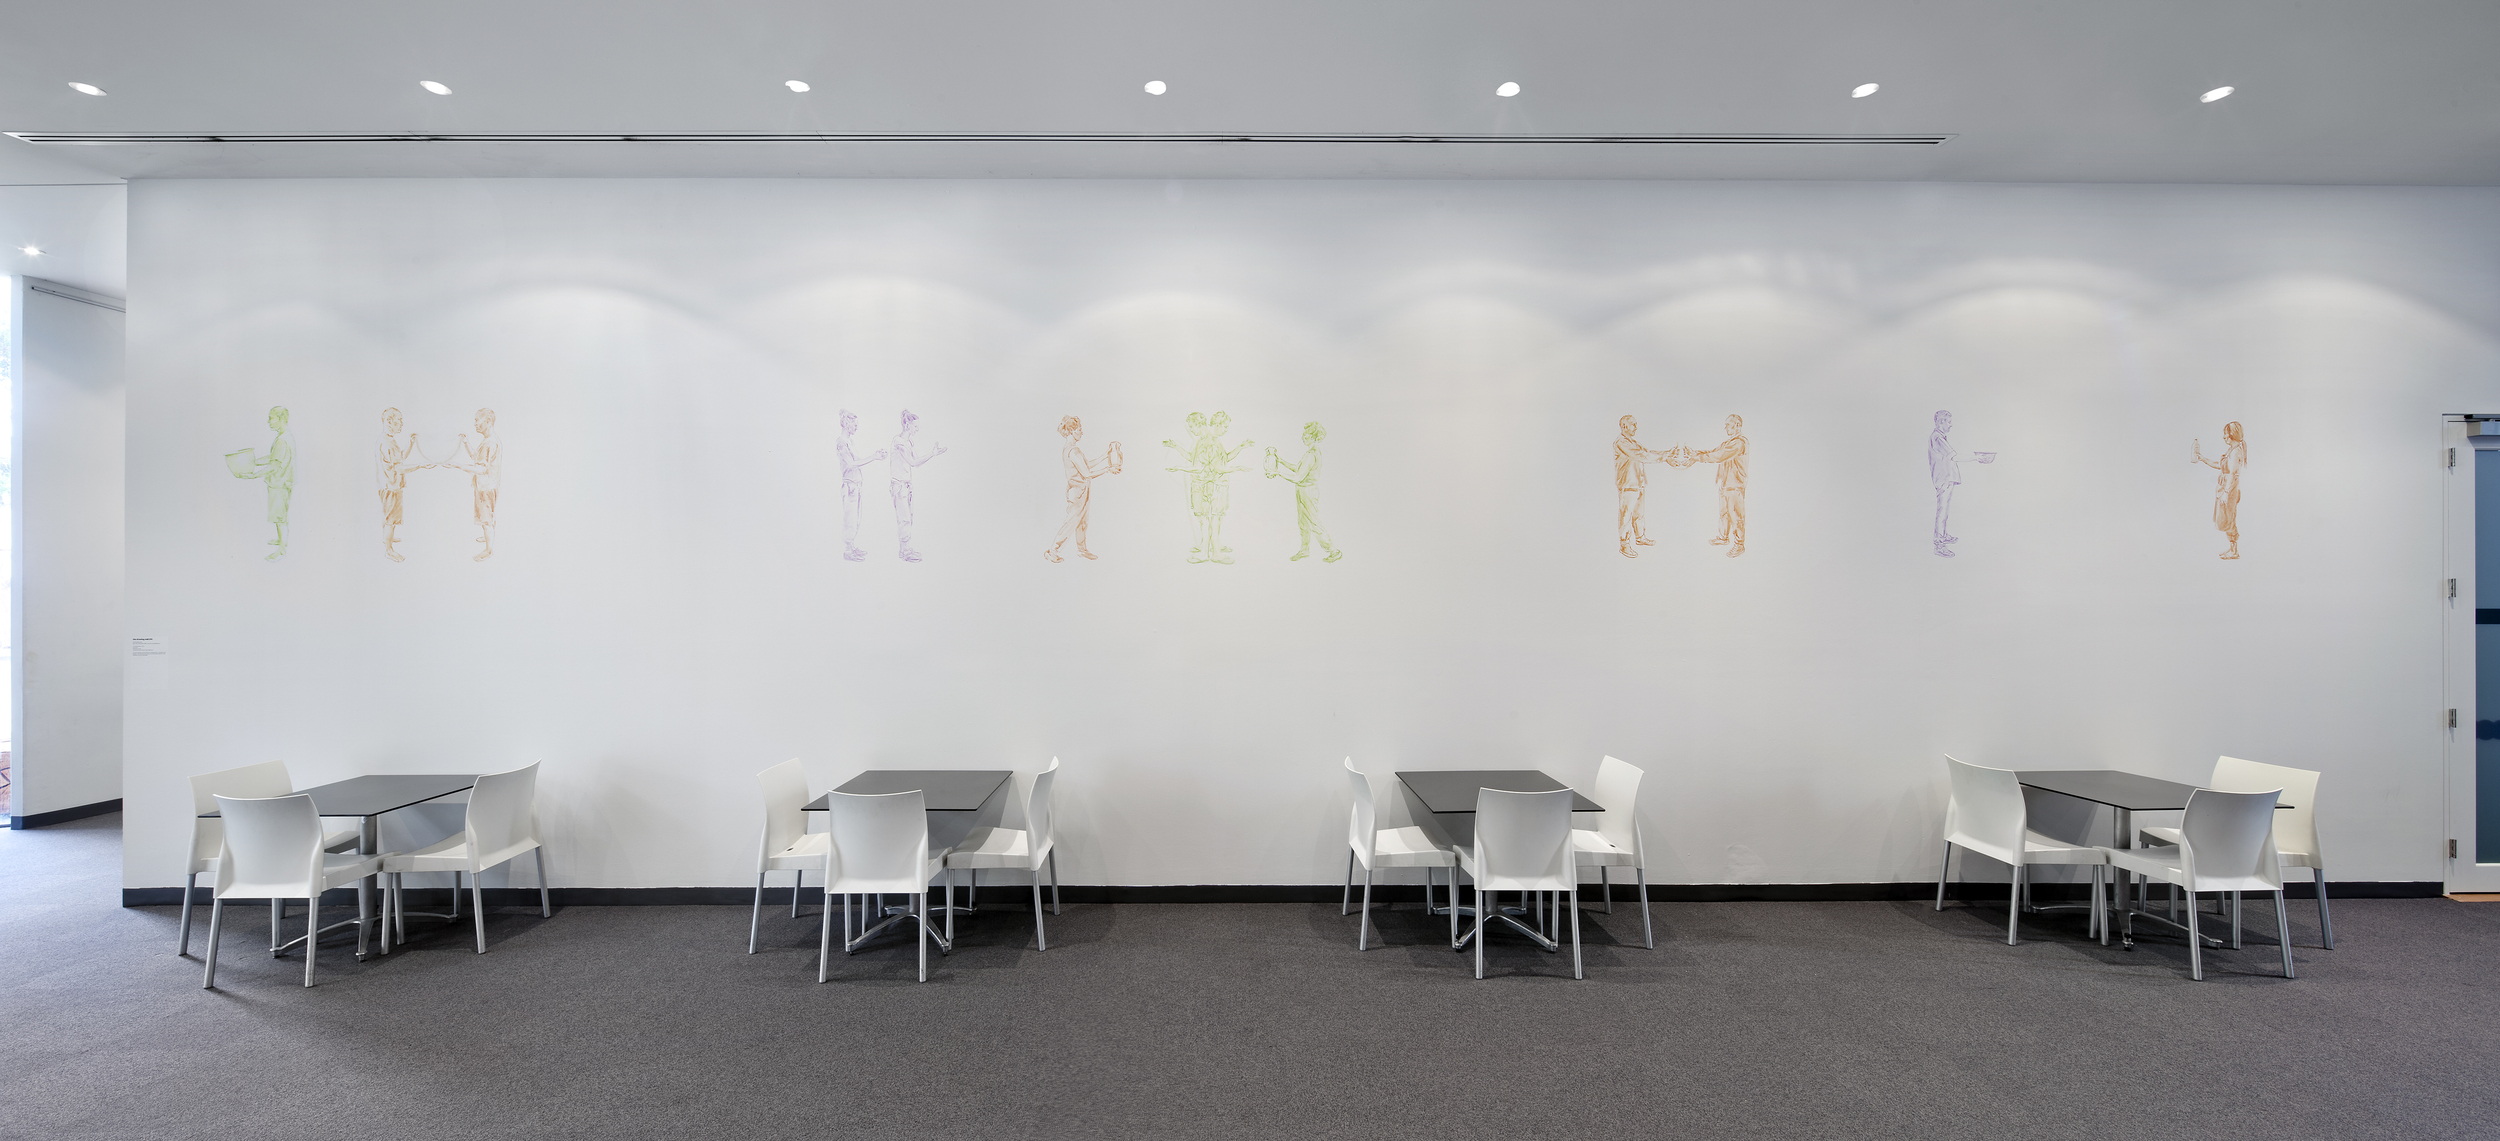 mcqualter_2013_the realised gesture_shep art museum_andrew curtis.jpg